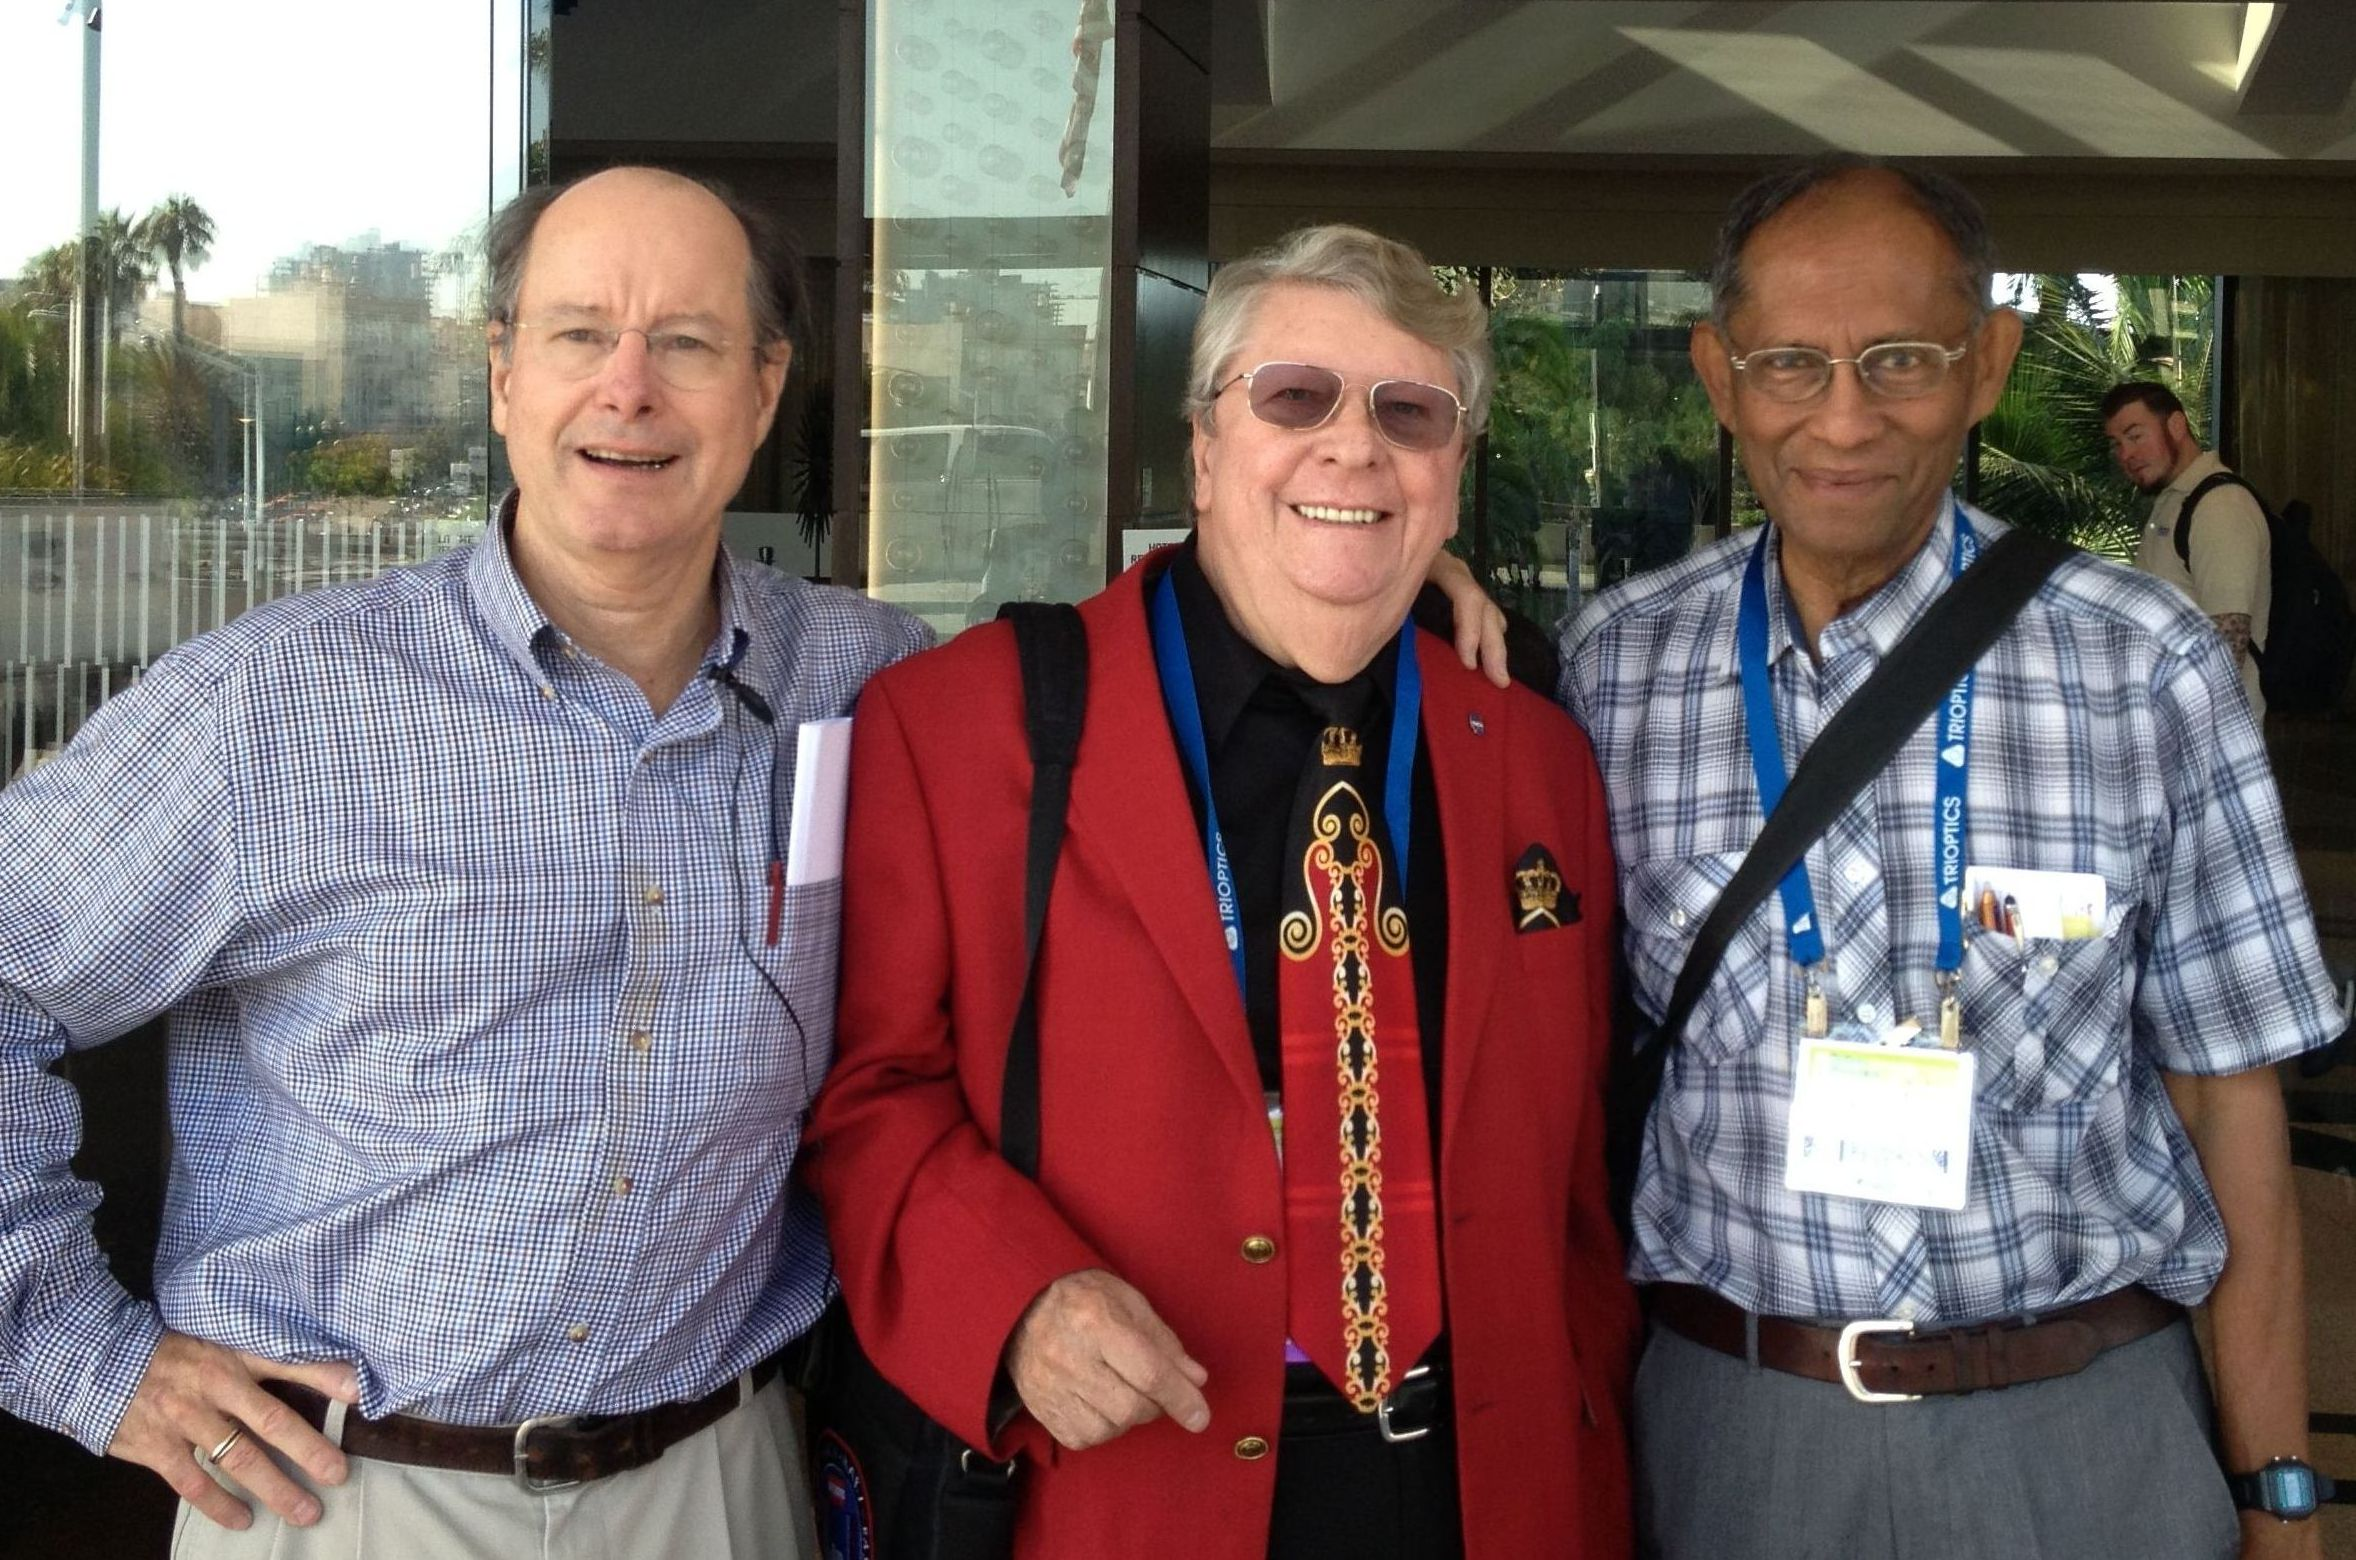 Brig Klyce, Richard Hoover, Chandra Wickramasinghe at the SPIE Convention, 28 Aug 2013. Date was in my cellphone!